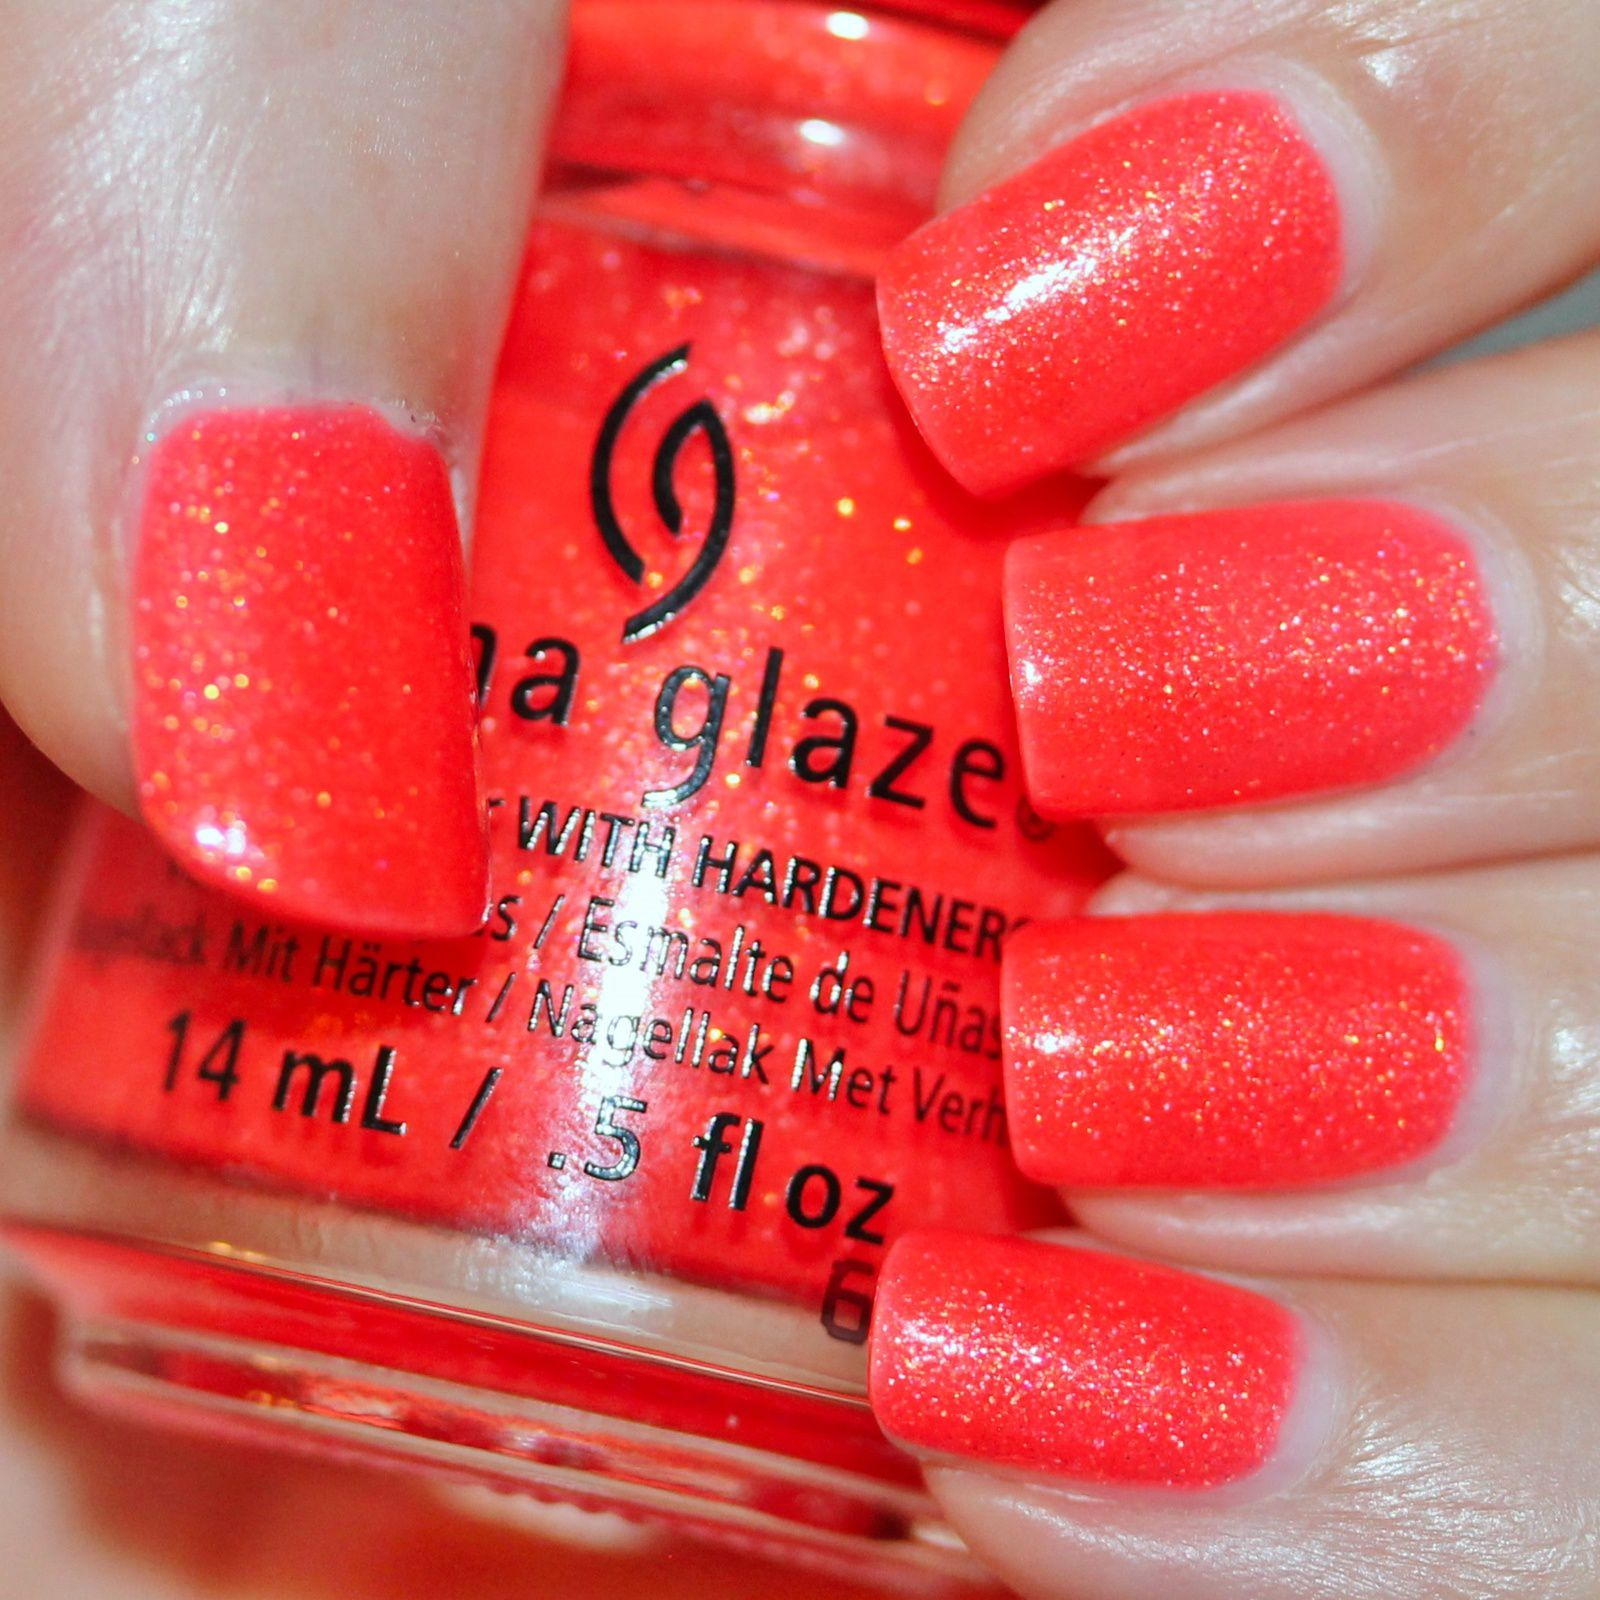 Duri Rejuvacote / China Glaze Papa Don't Peach / Lilypad Lacquer Crystal Clear Top Coat